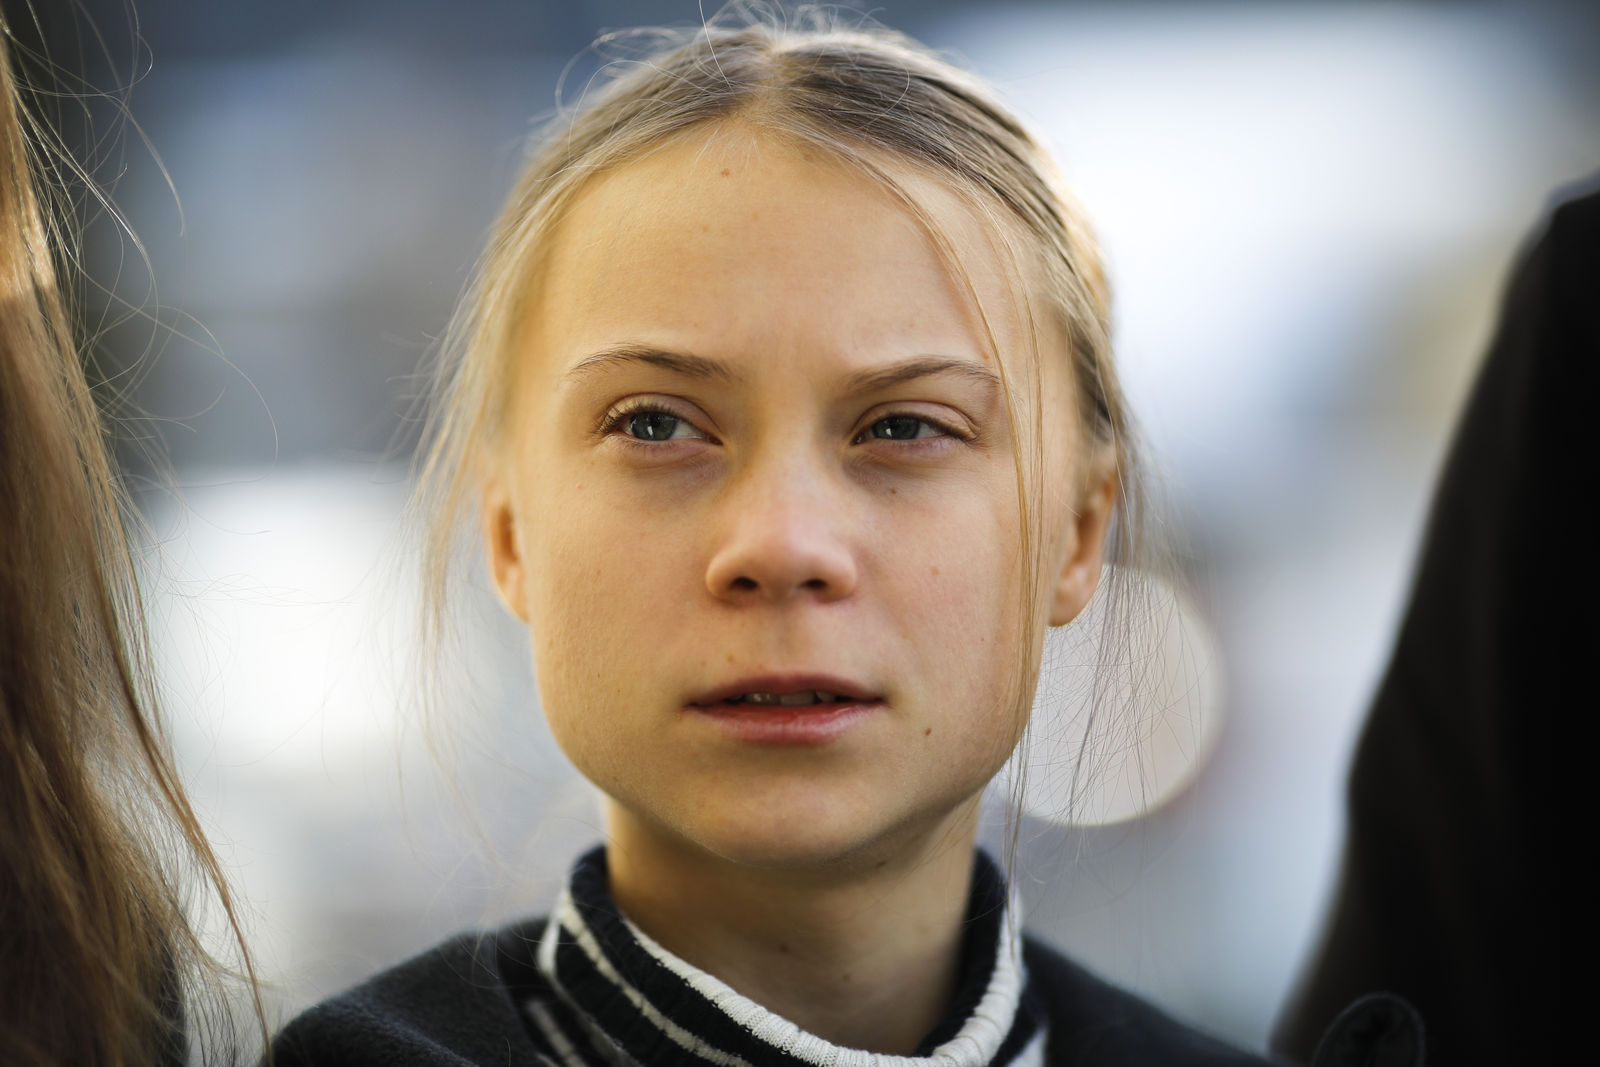 Swedish climate activist Greta Thunberg poses for media as she arrives for a news conference in Davos, Switzerland, Friday, Jan. 24, 2020. The 50th annual meeting of the forum is taking place in Davos from Jan. 21 until Jan. 24, 2020 (AP Photo/Markus Schreiber)